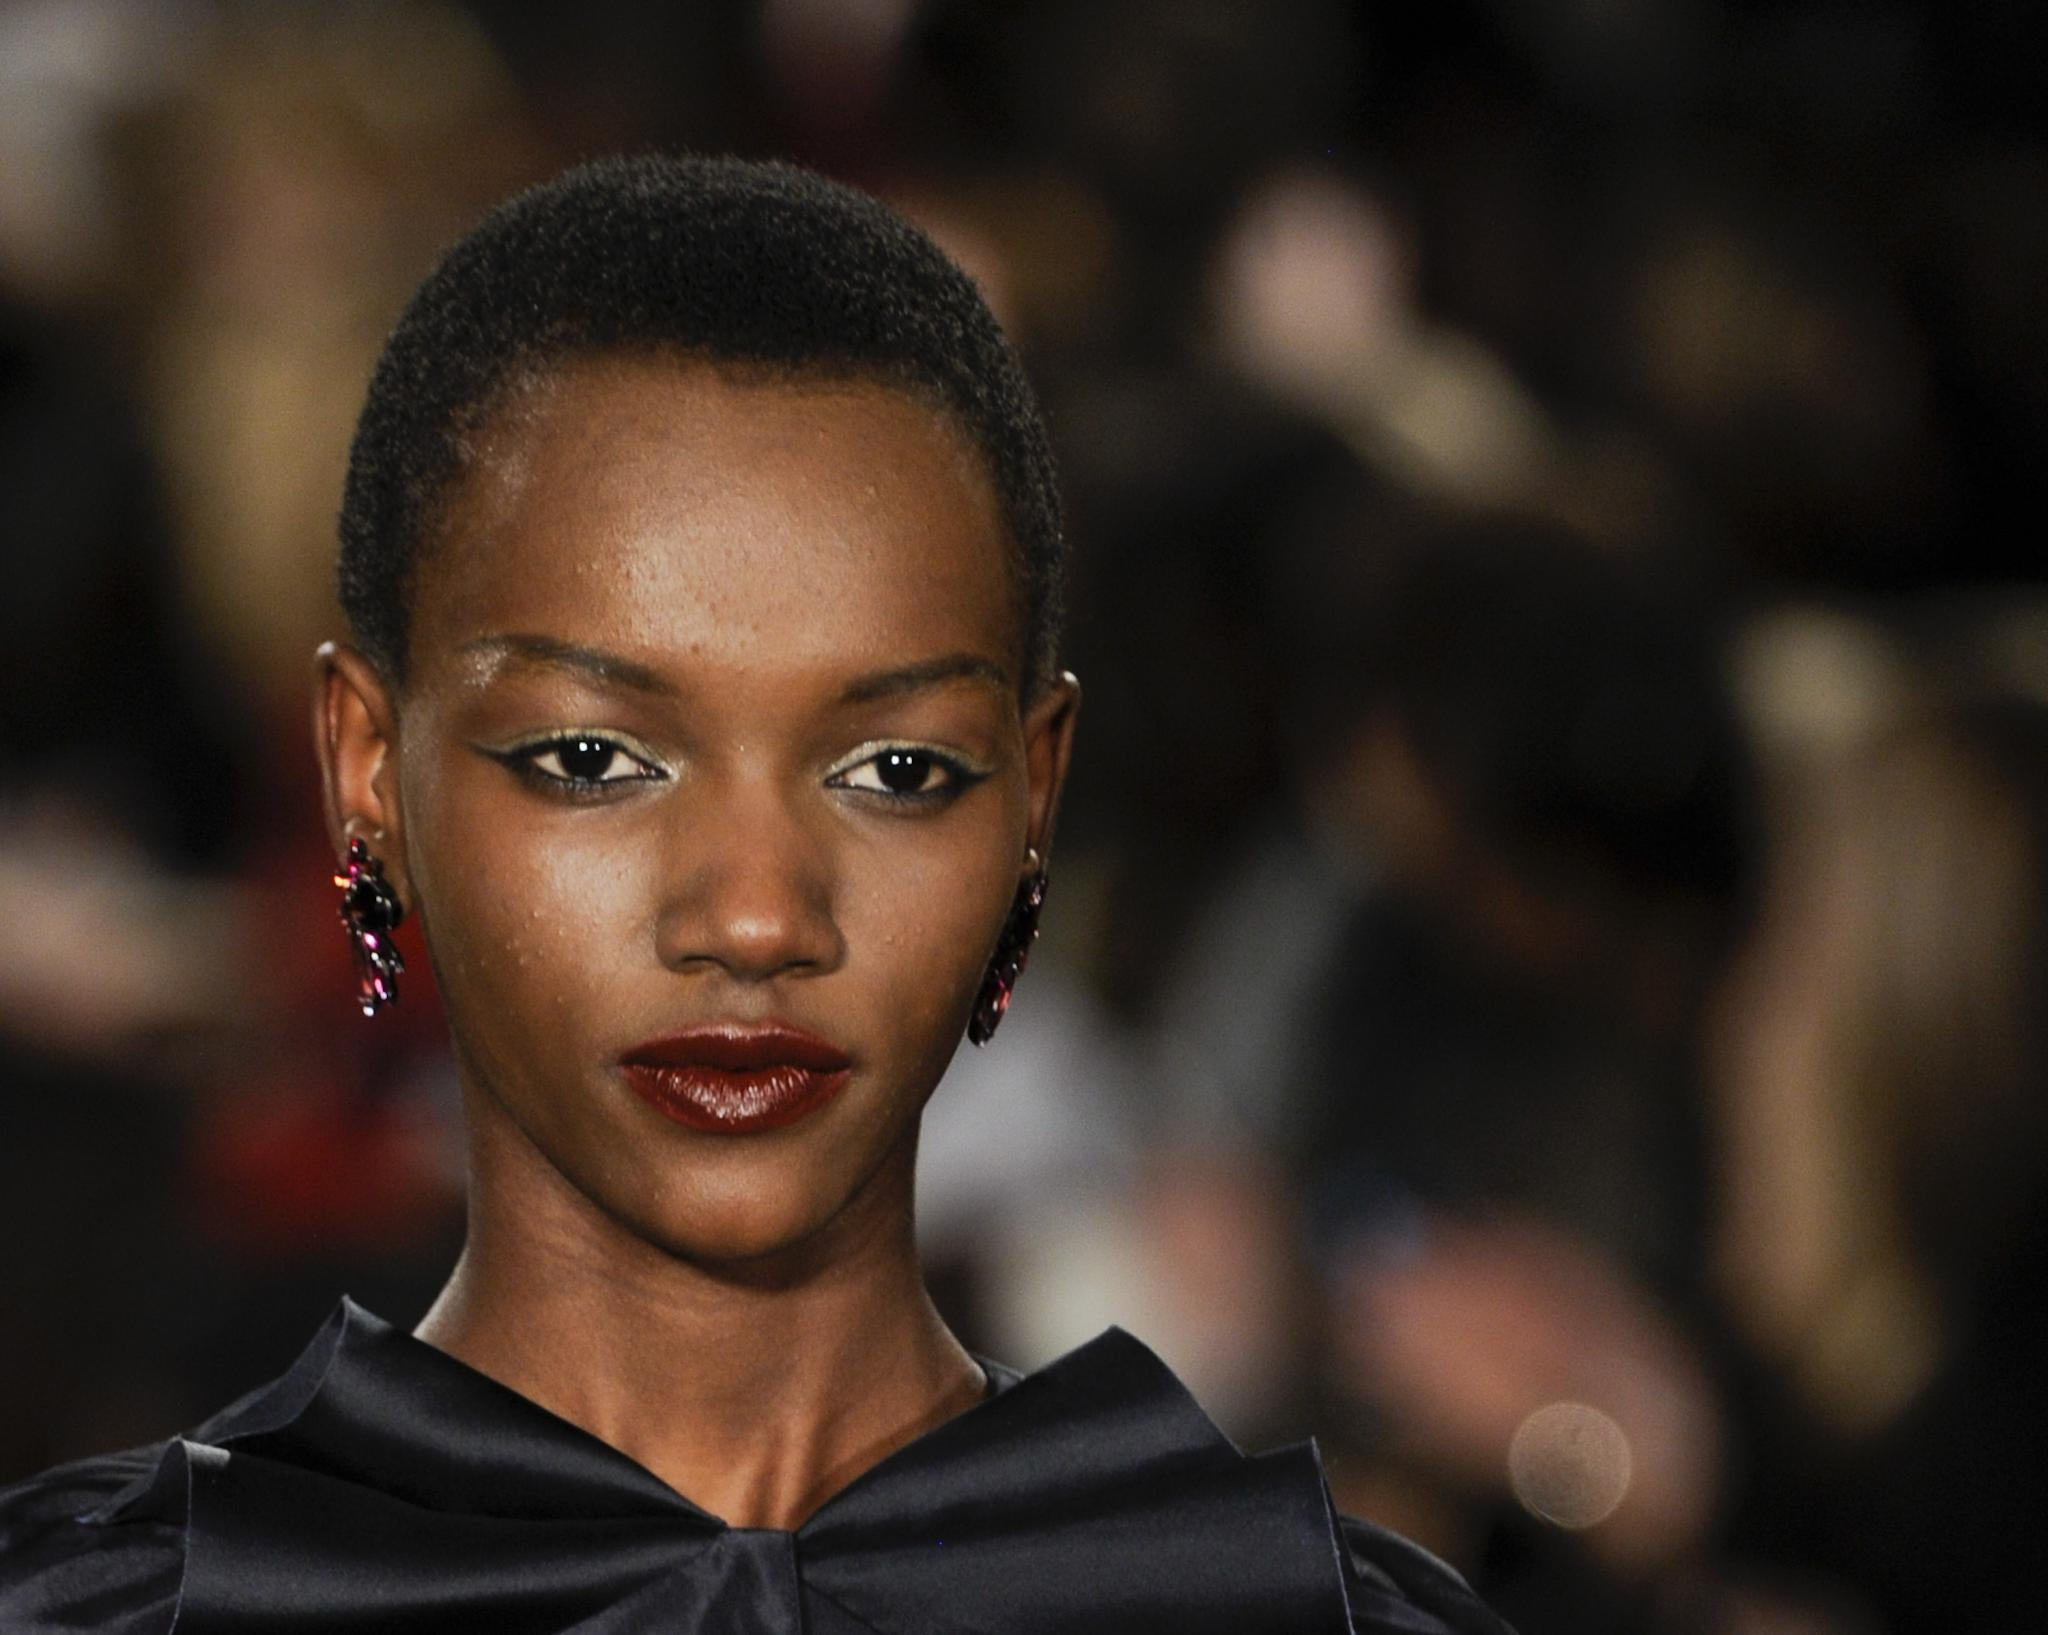 This Black Model is Changing the Face of the Beauty Industry